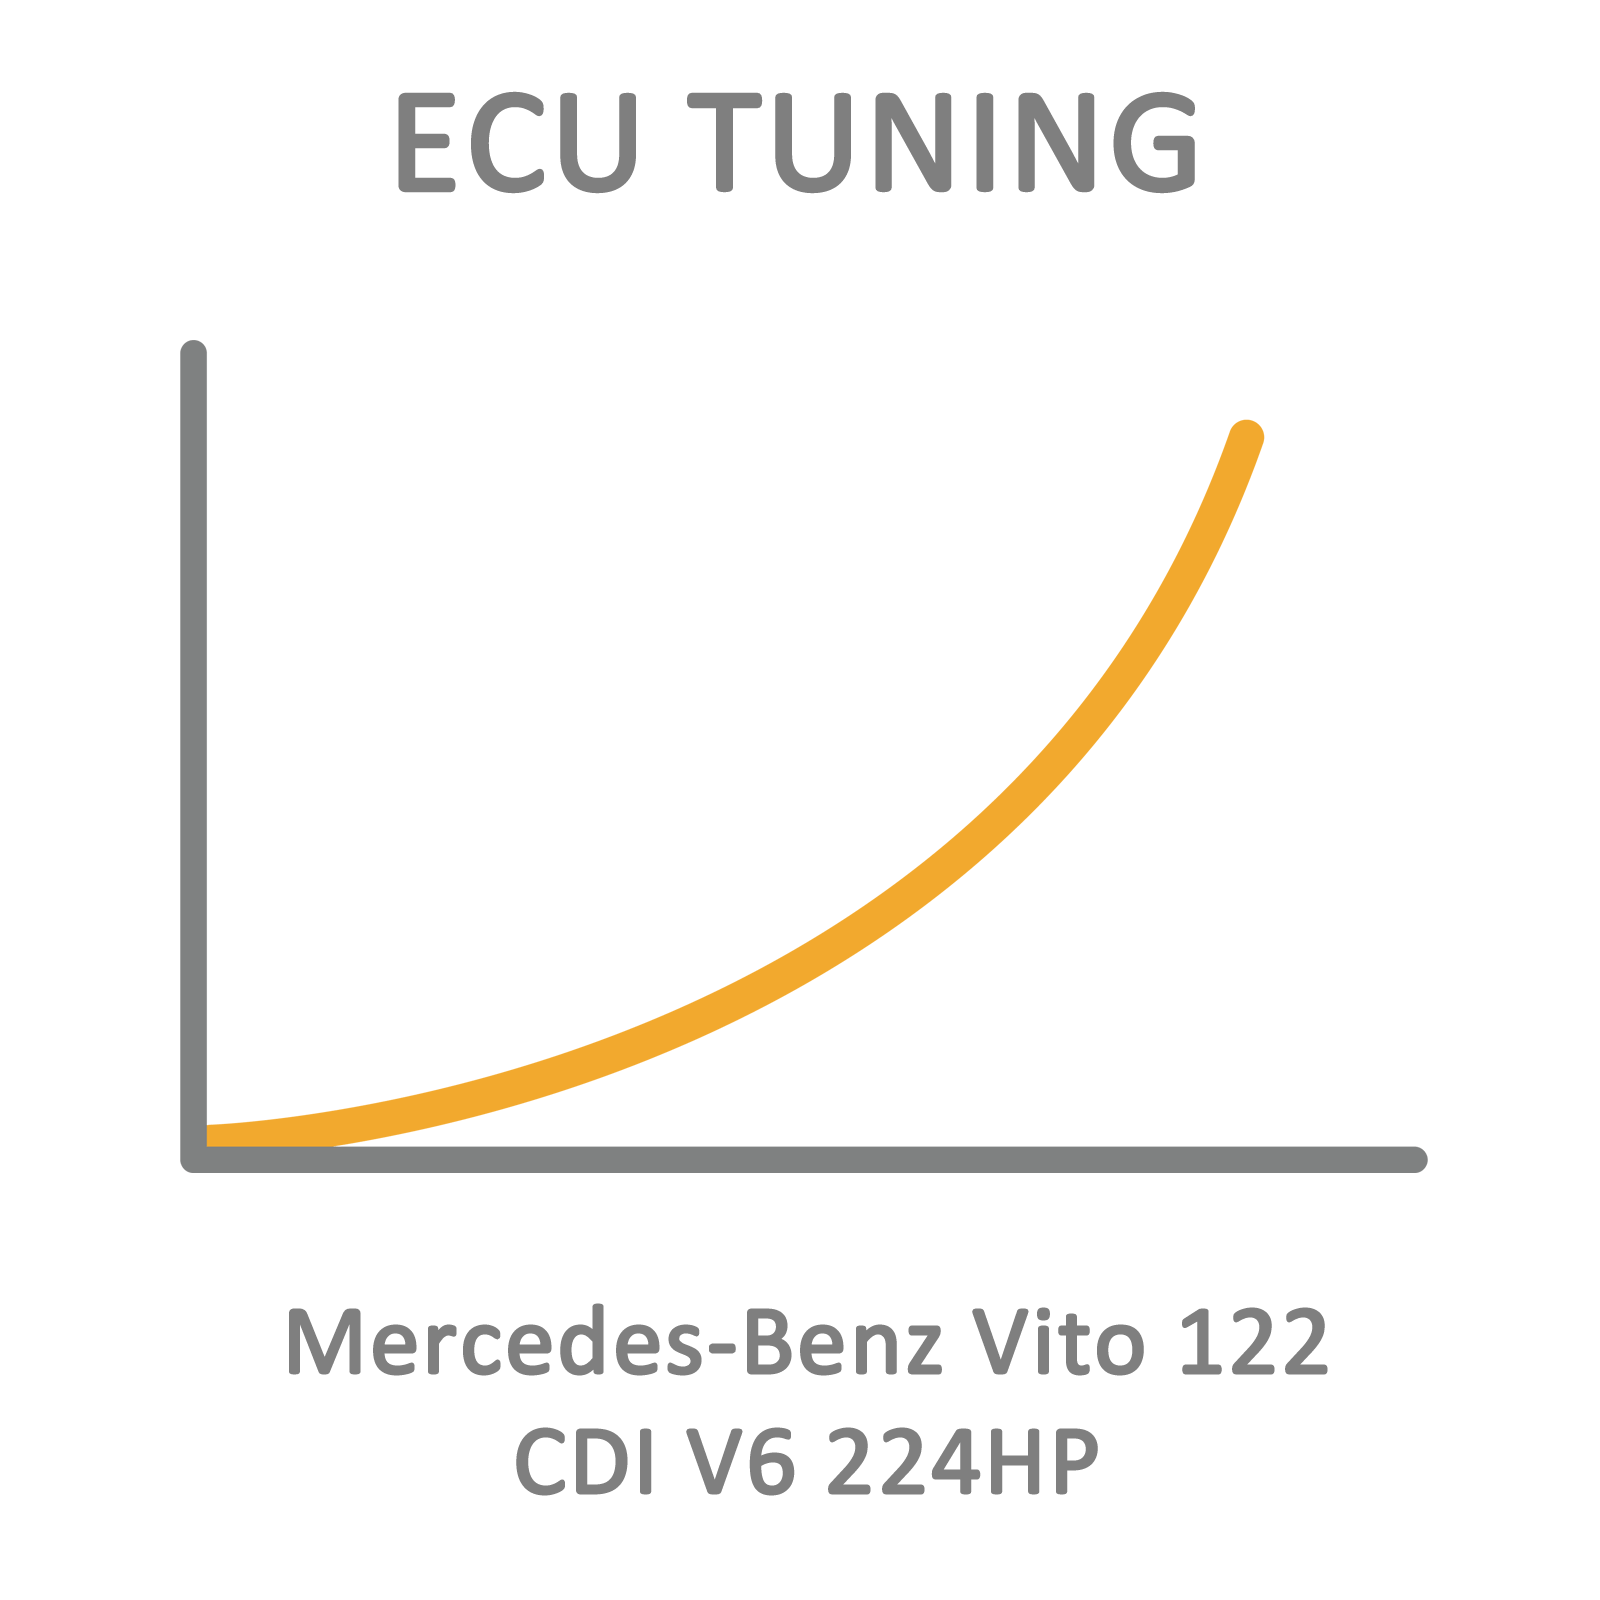 Mercedes-Benz Vito 122 CDI V6 224HP ECU Tuning Remapping